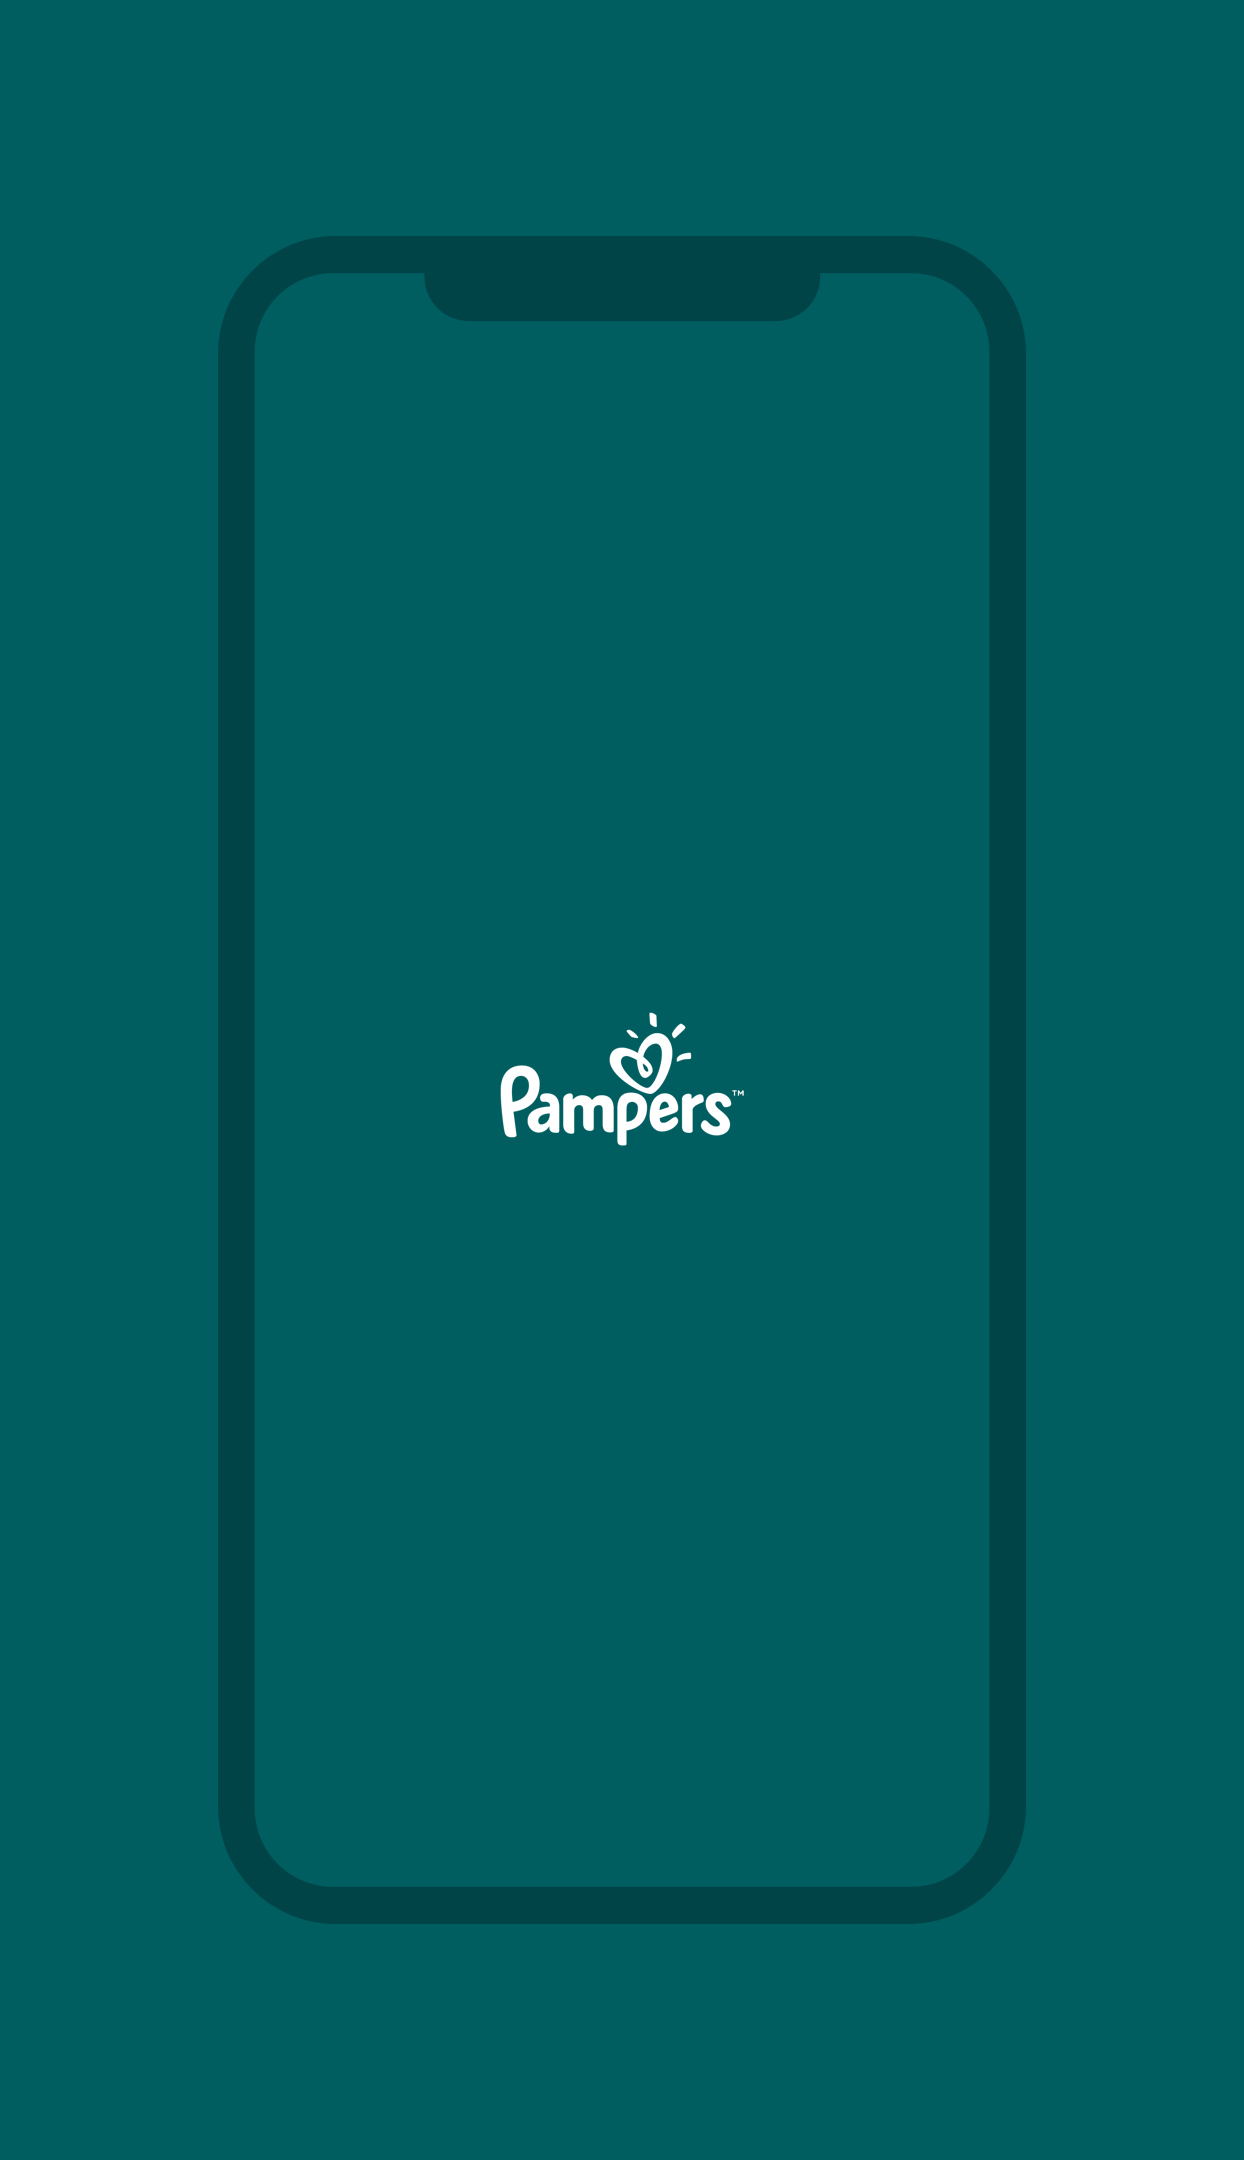 Pampers Case Thumbnail 5